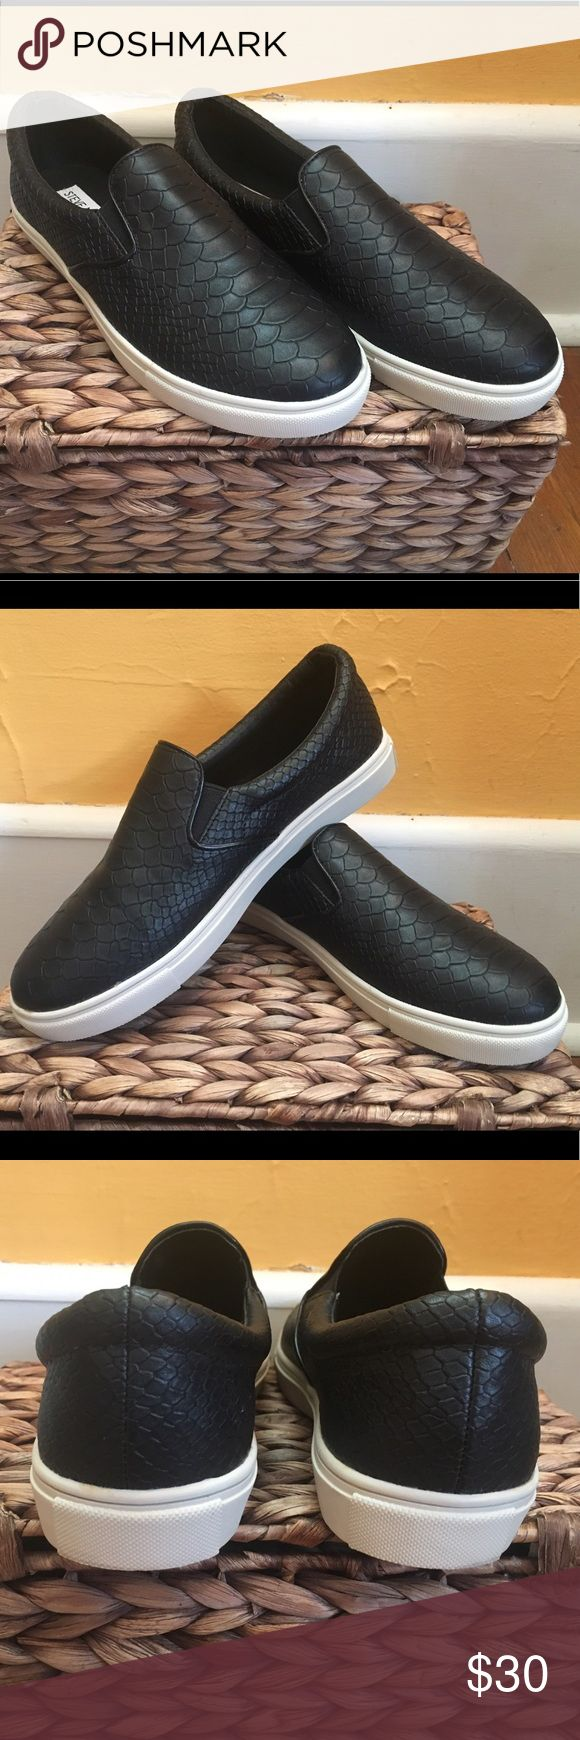 25 best ideas about slip on tennis shoes on